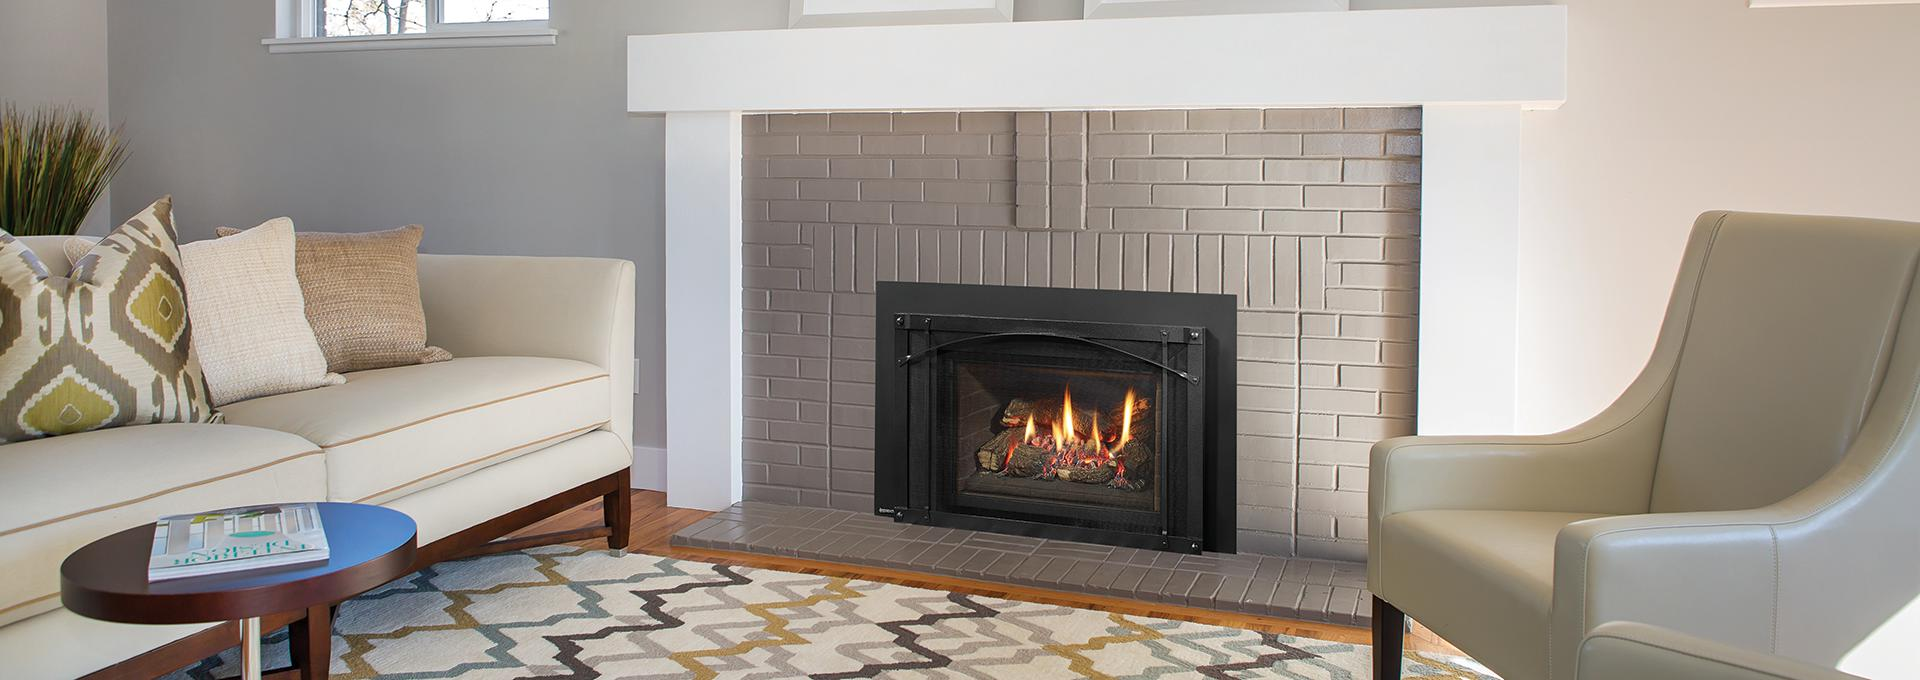 area edmonton new cleaning repair gas replacement fireplace first